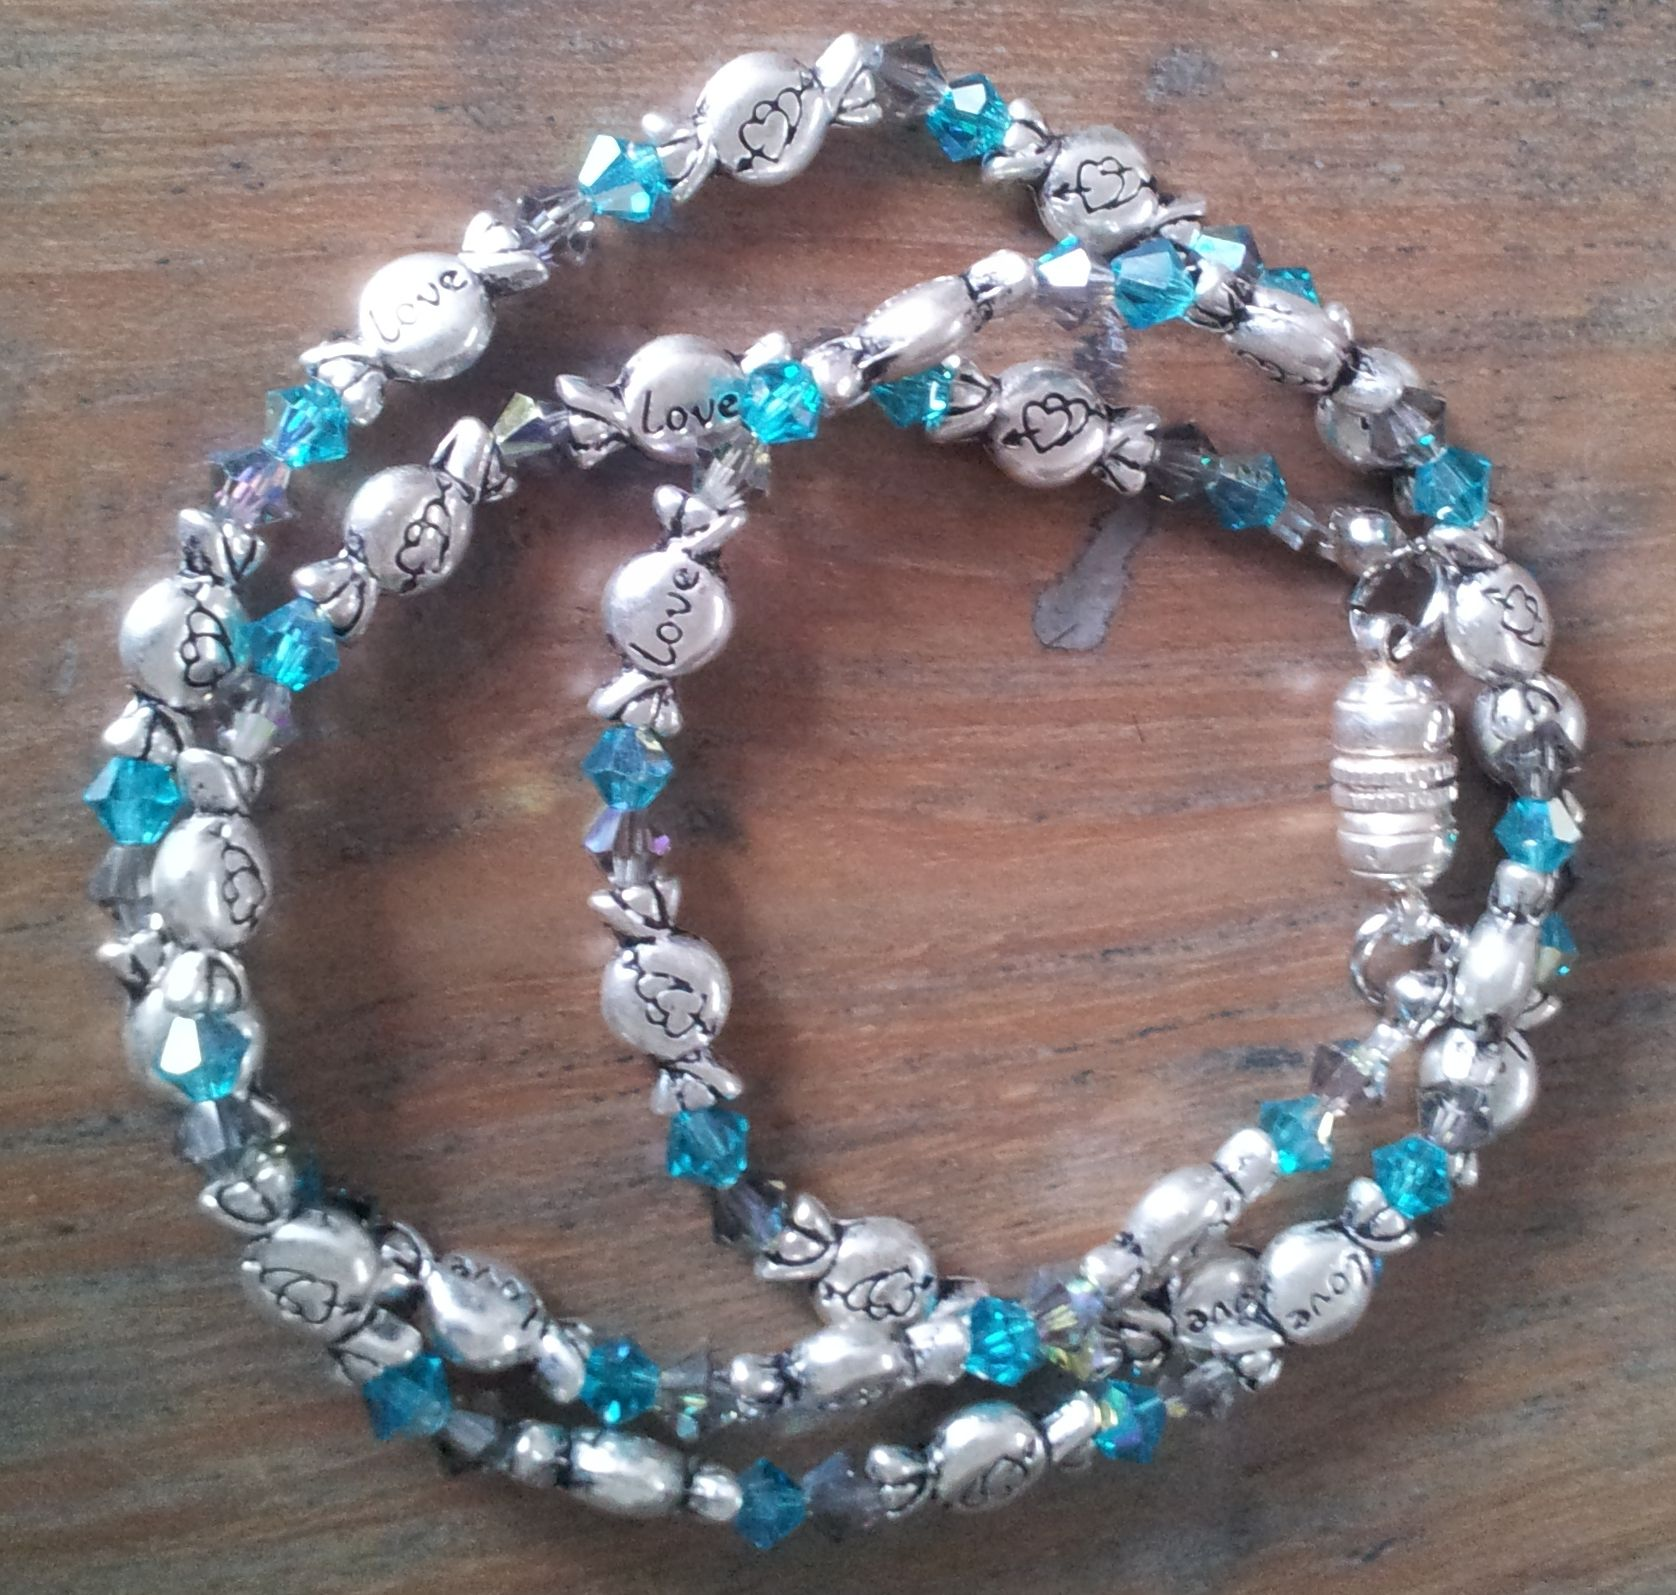 Wrap bracelet with Swarovski beads